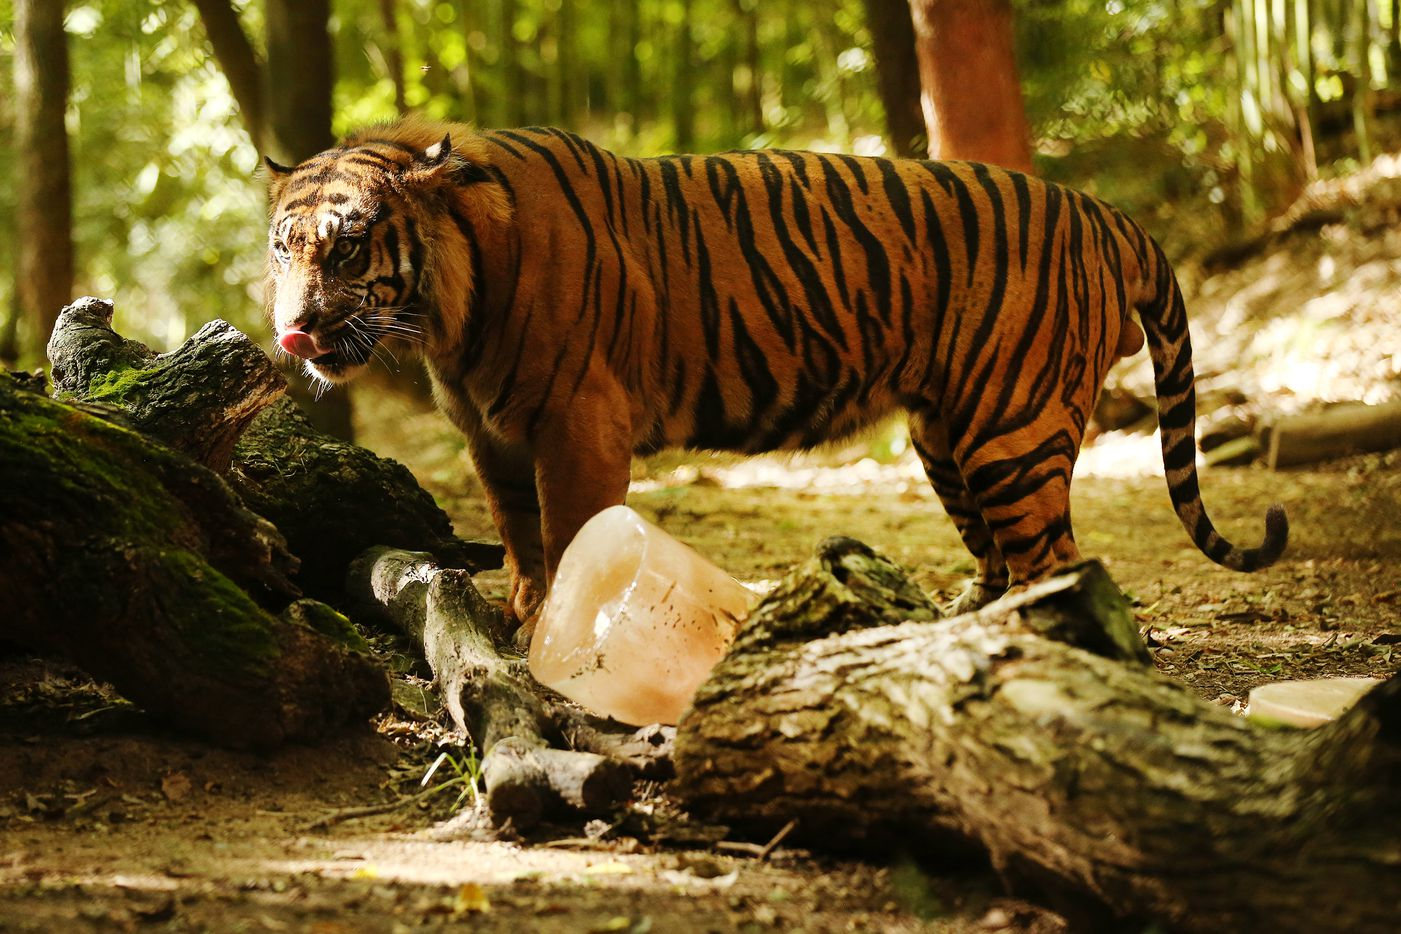 Manis, a sumatran tiger, stood near a frozen enrichment treat at the Dallas Zoo last June. The treat was made out of chicken broth. Nearby was a serving of ground beef and a frozen watermelon.